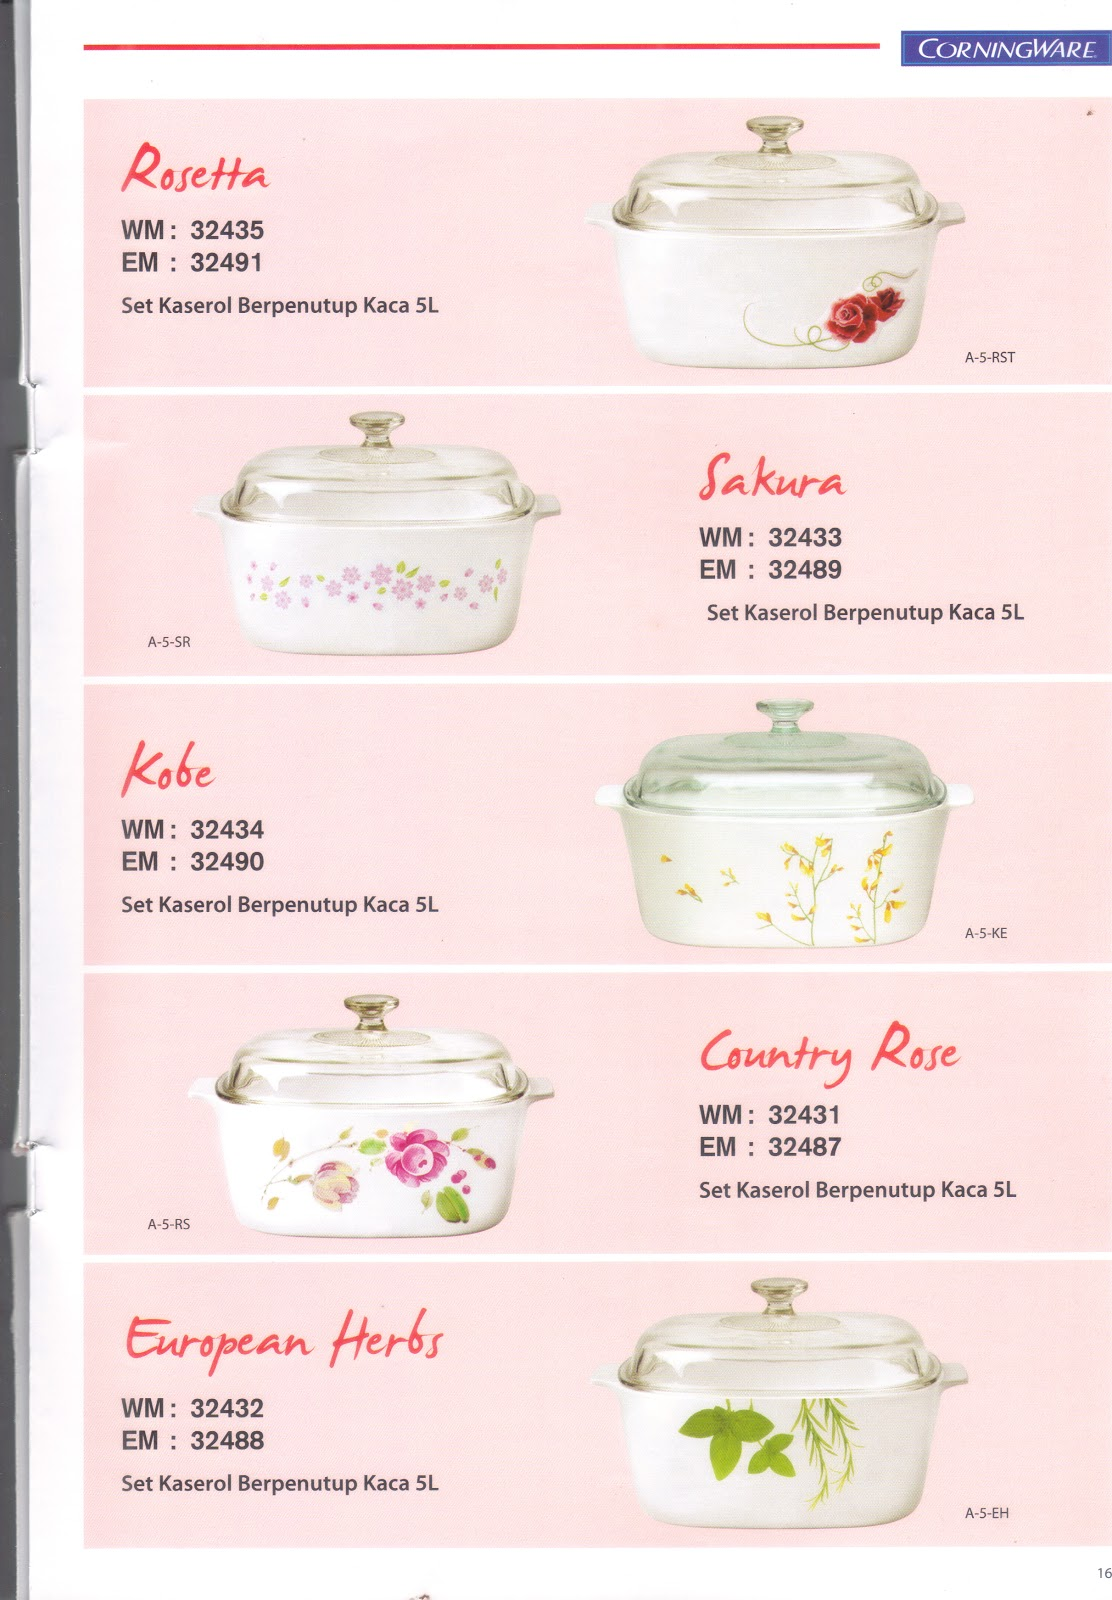 Corningware Outlet Coupons & Corningware Outlet Coupons 2018